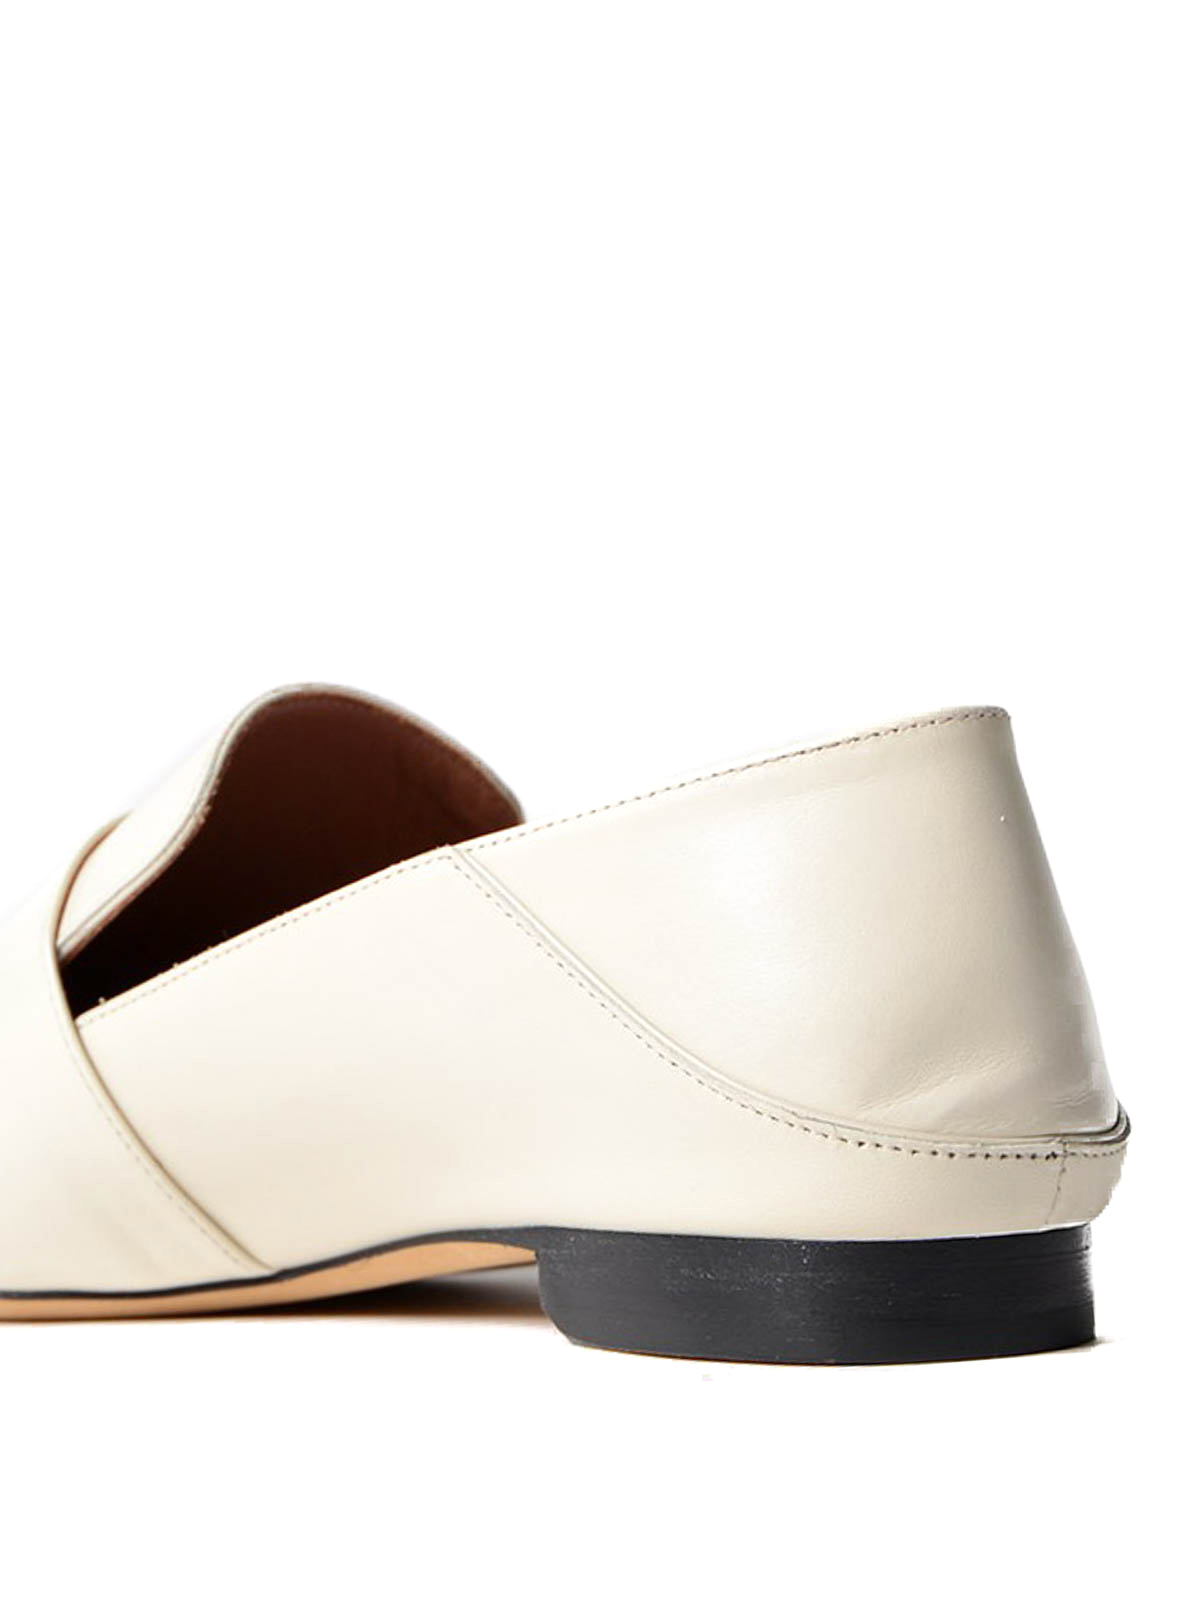 Bally - Lottie white leather loafers - Loafers & Slippers